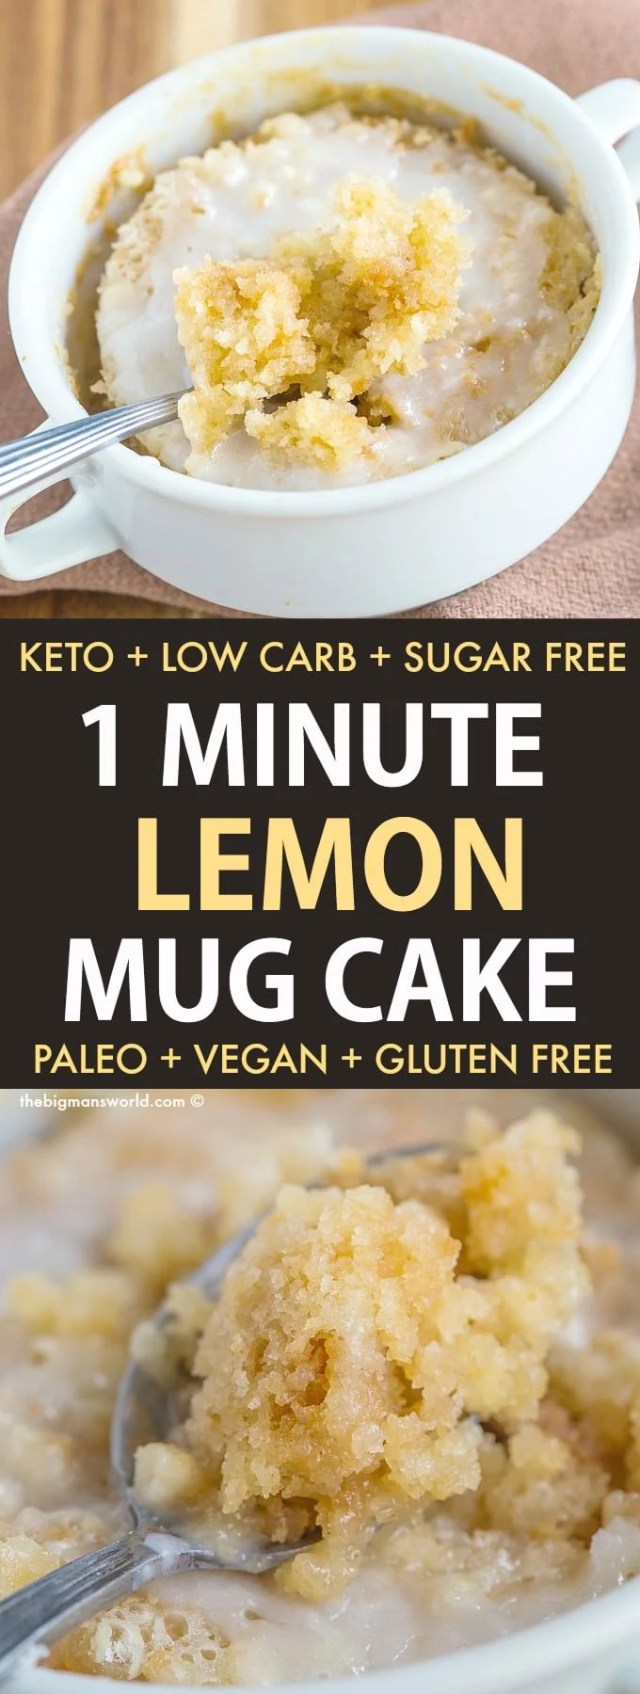 An easy low carb, keto and paleo mug cake that tastes like a Meyer lemon cake!